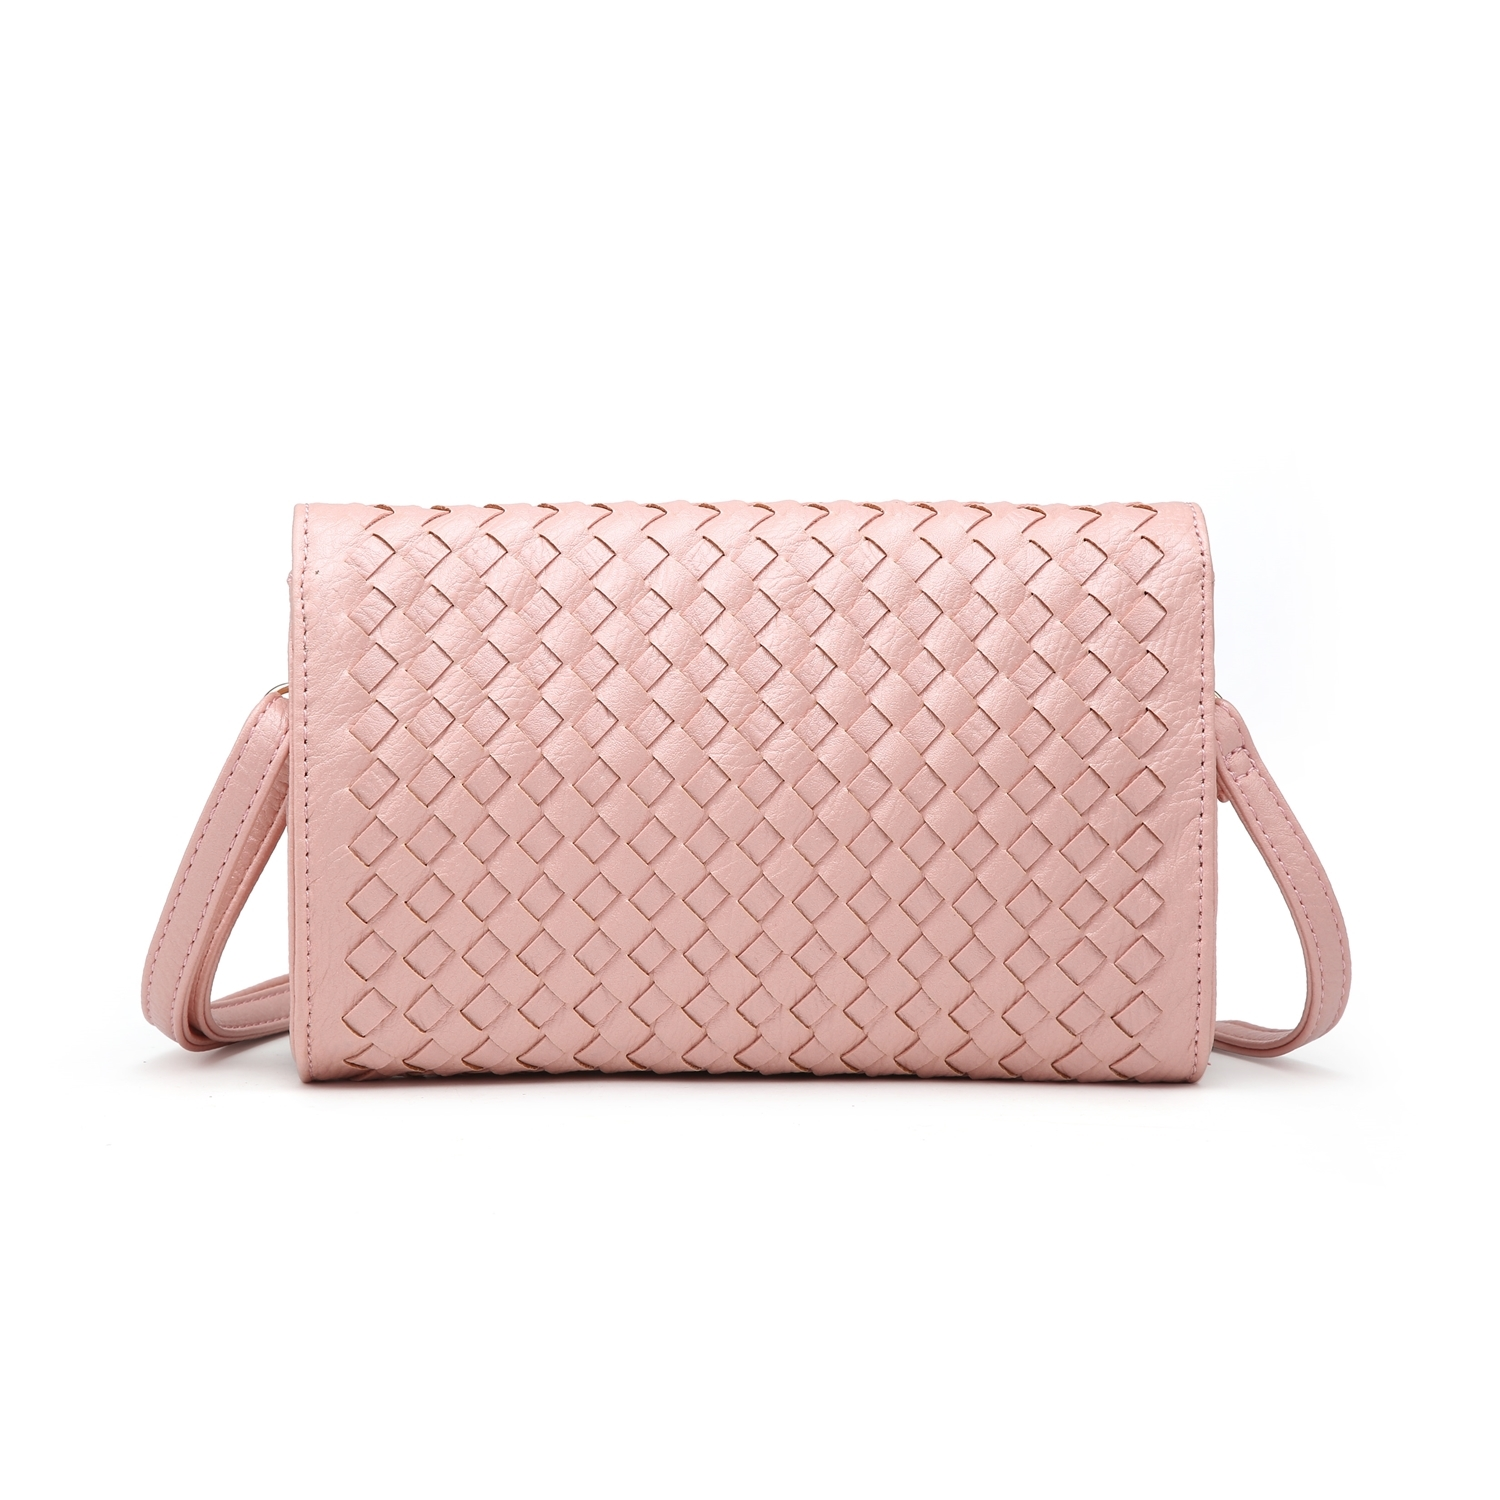 8248 HOM Clutch Handbag